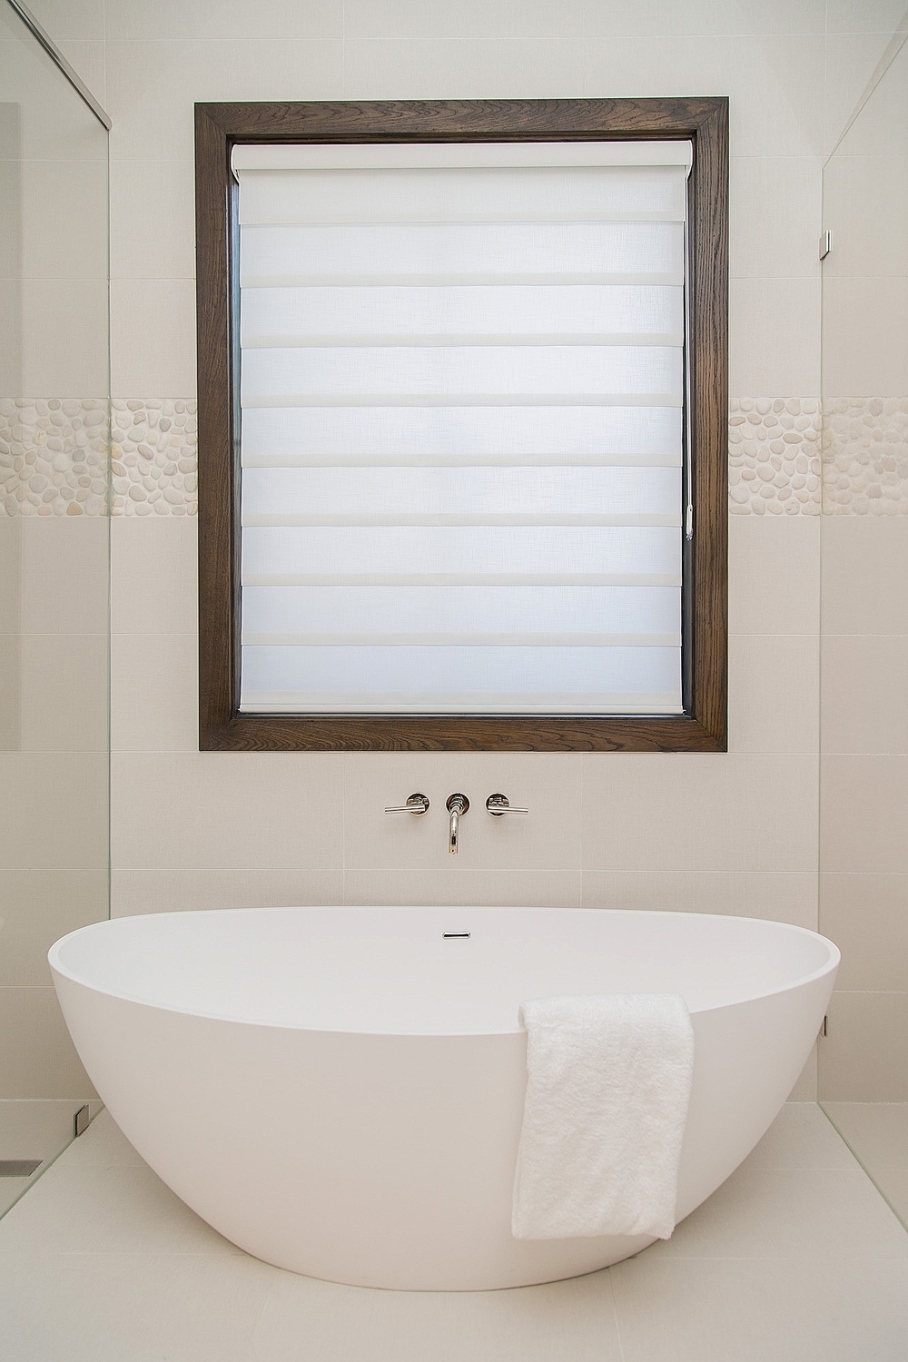 Master bathroom remodel; bathtub | Interior Designer: Carla Aston / Photographer: Tori Aston